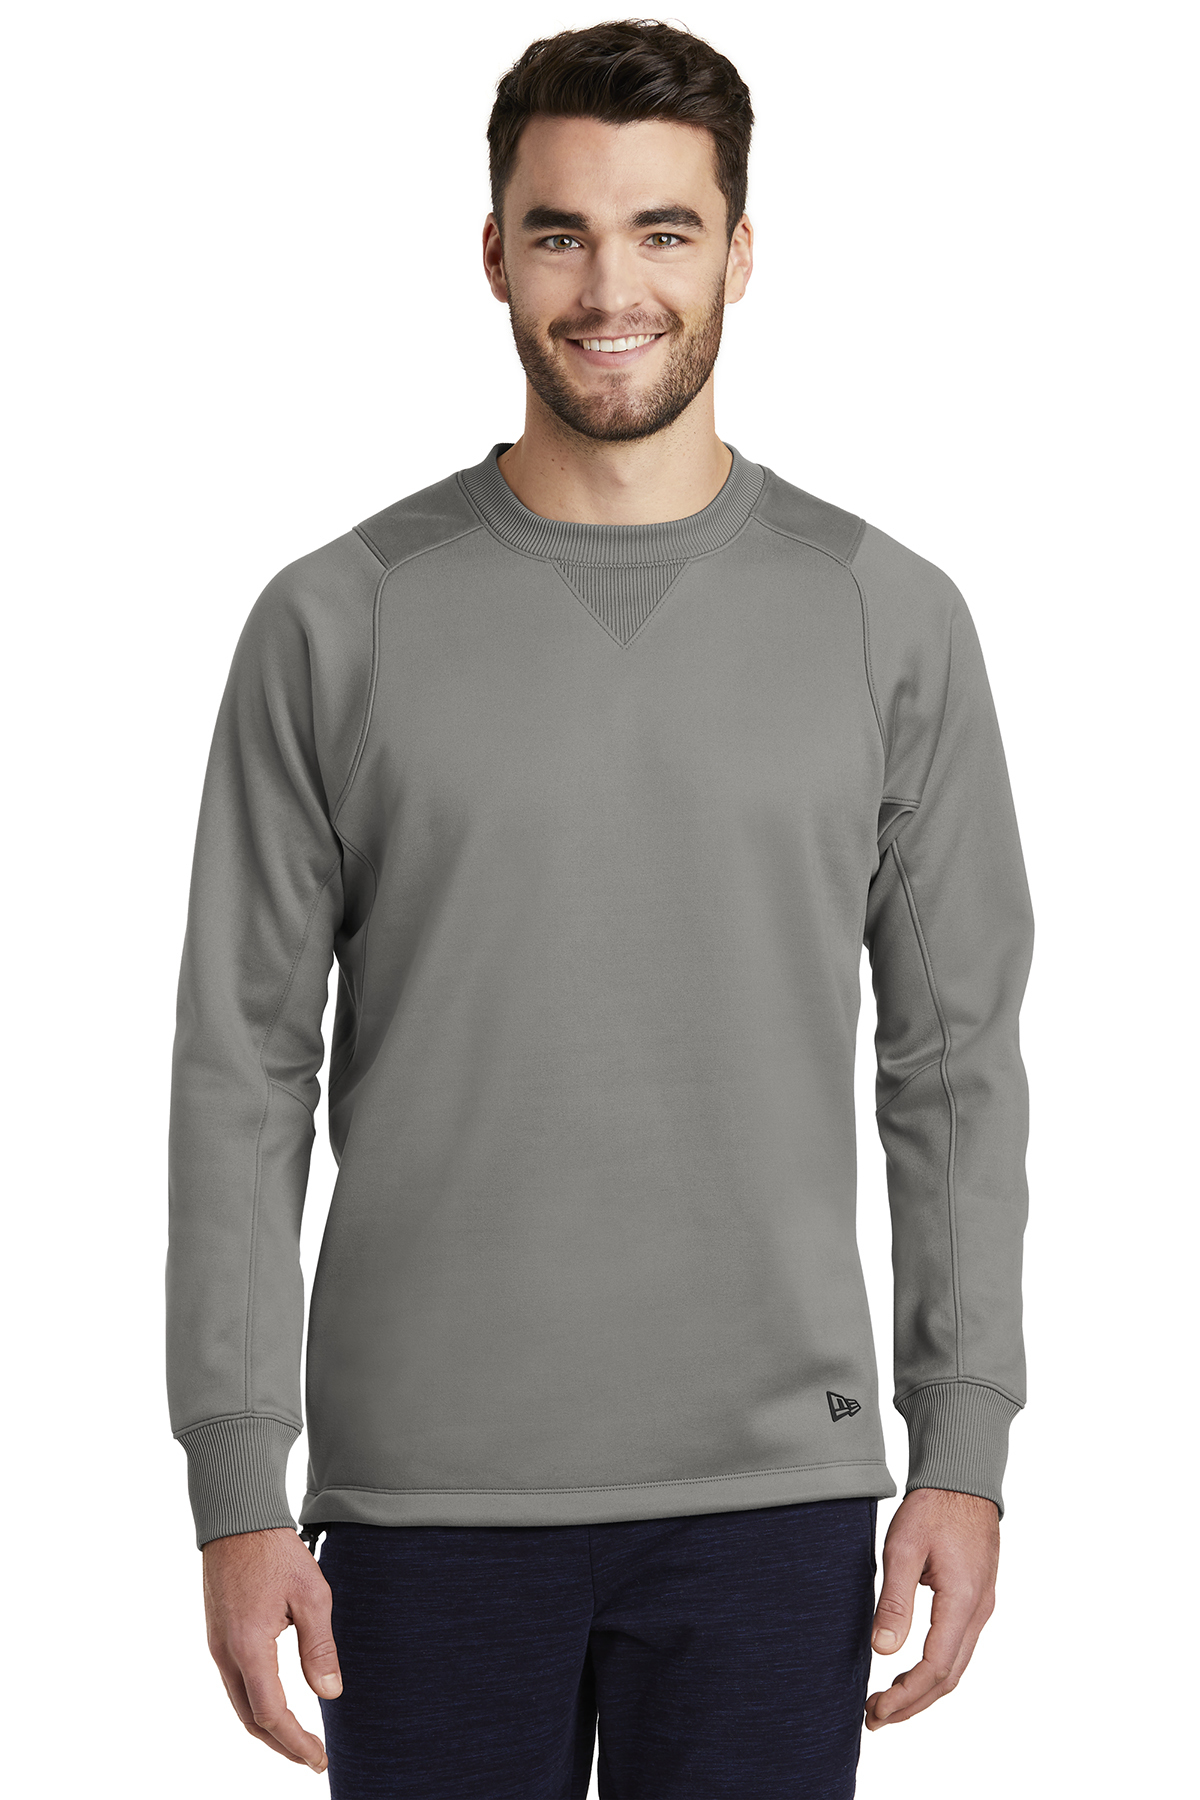 New Era NEA521 - Men's Venue Fleece Crew